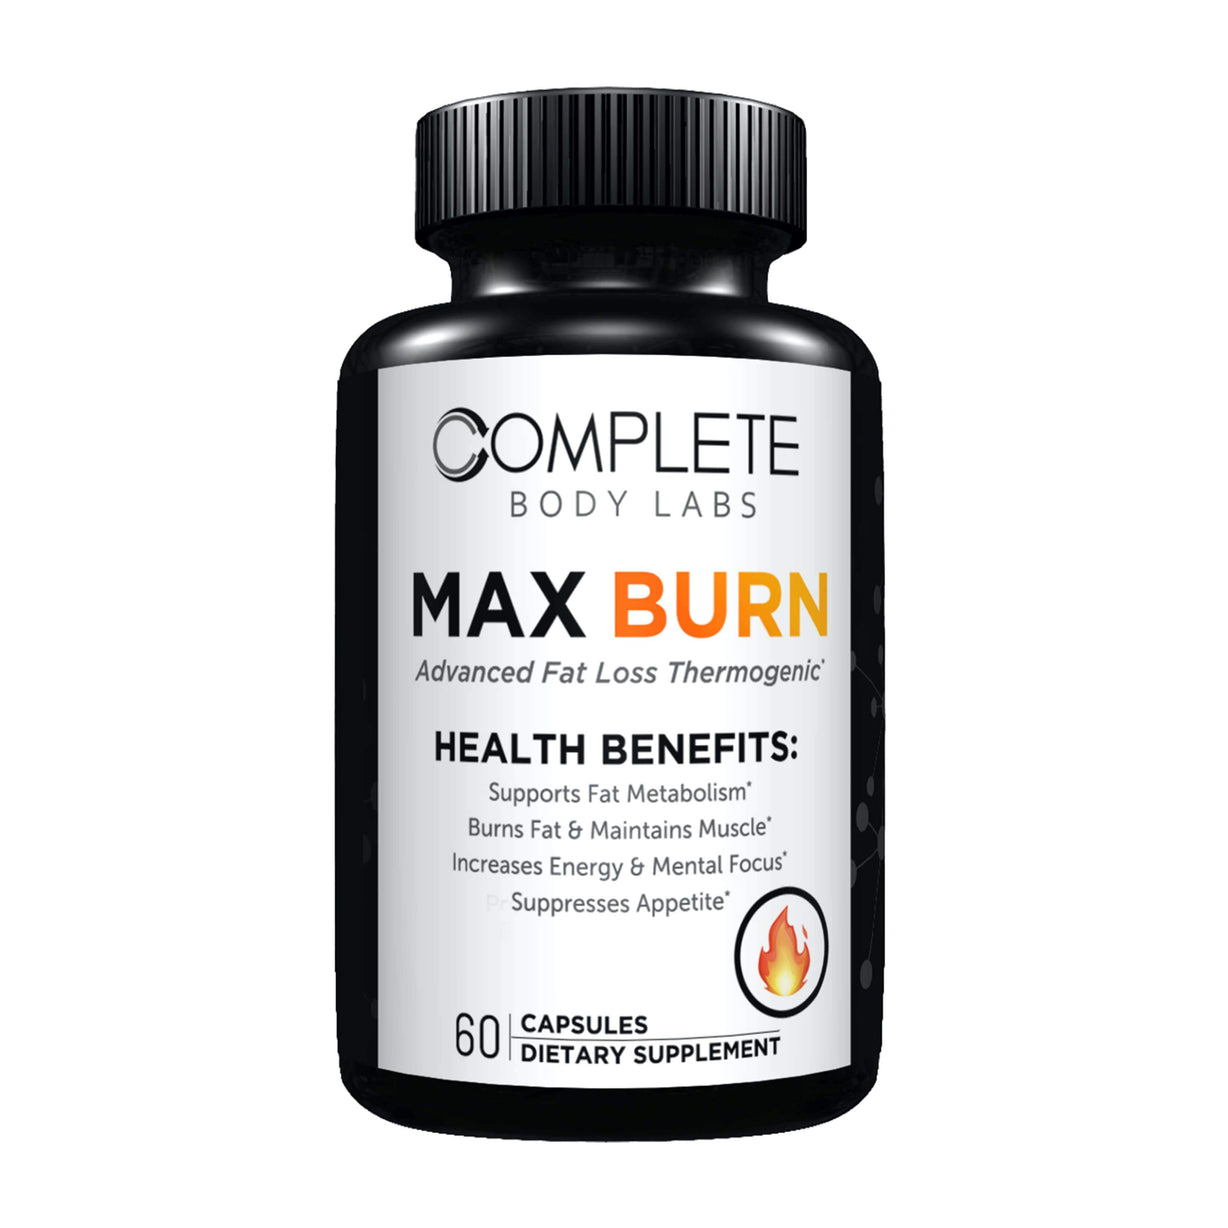 MAX BURN (Advanced Fat Loss Thermogenic) Complete Body Labs | Probiotics, Nootropics, Brain Supplements, Protein Bars, Workout Supplements, Health Supplements, Omega-3 & Essential Vitamins For Men & Women